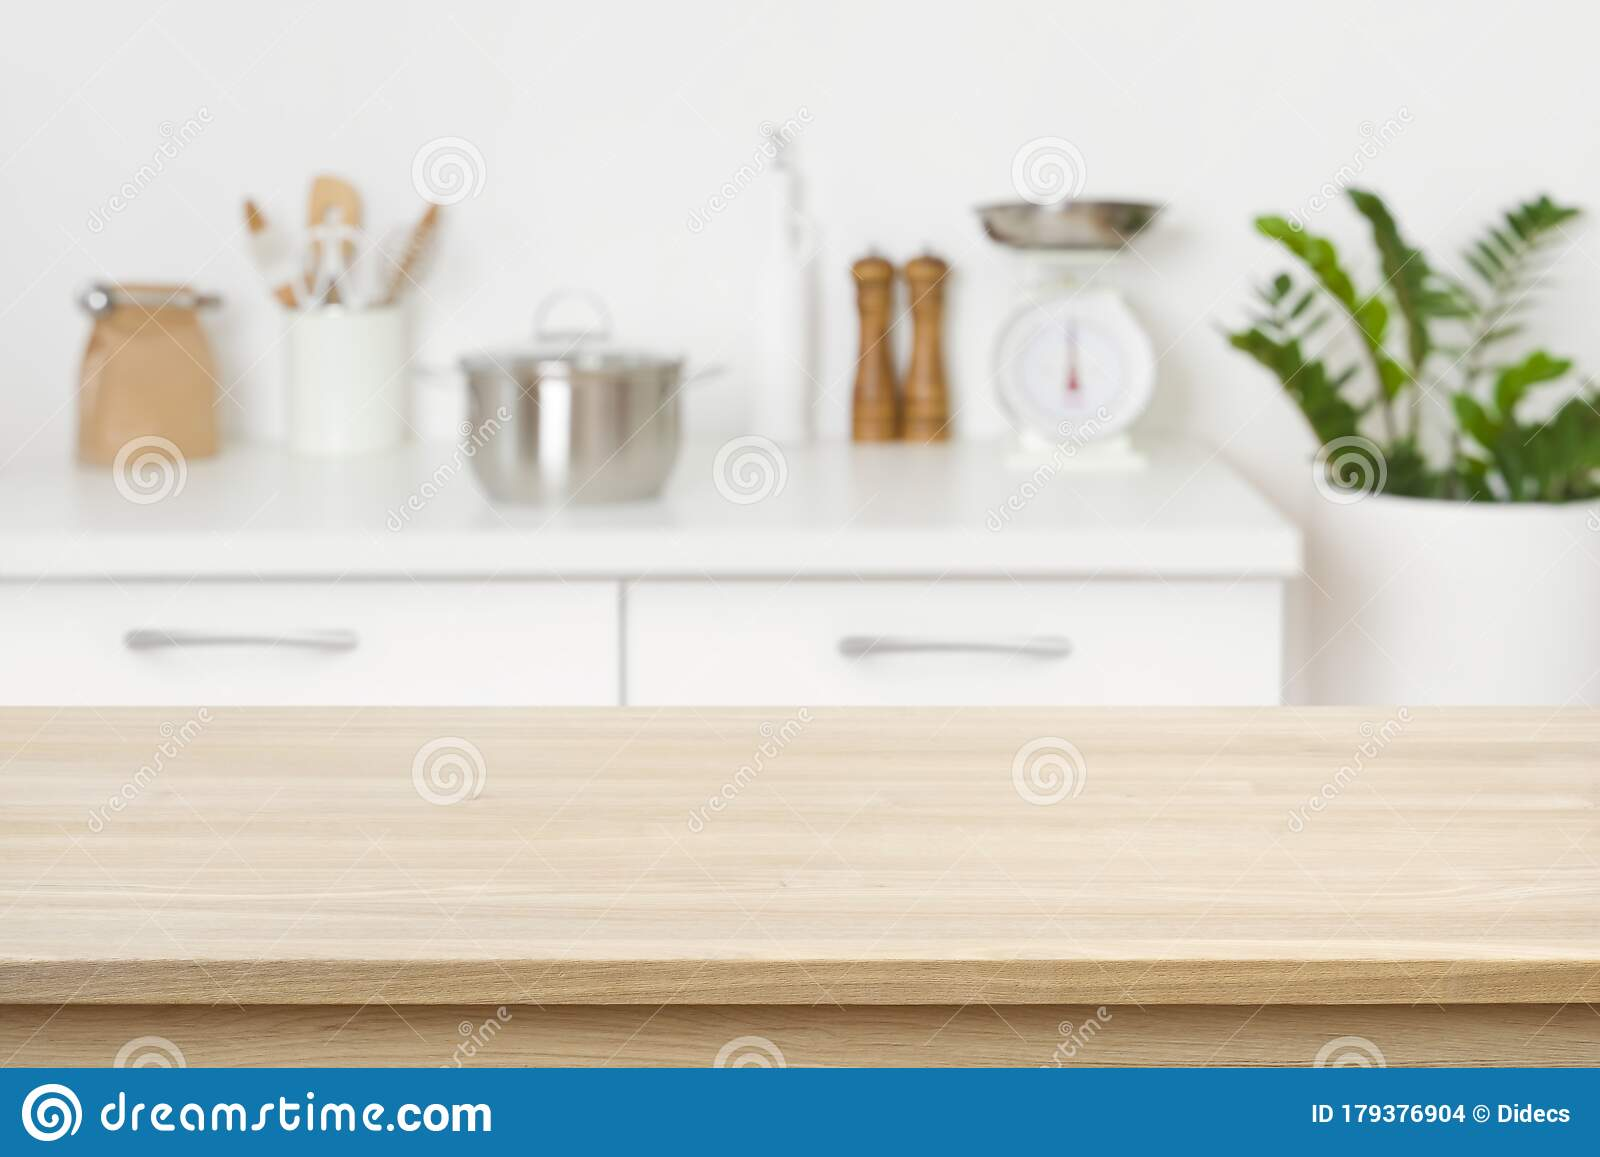 table background of free space on blurred kitchen counter